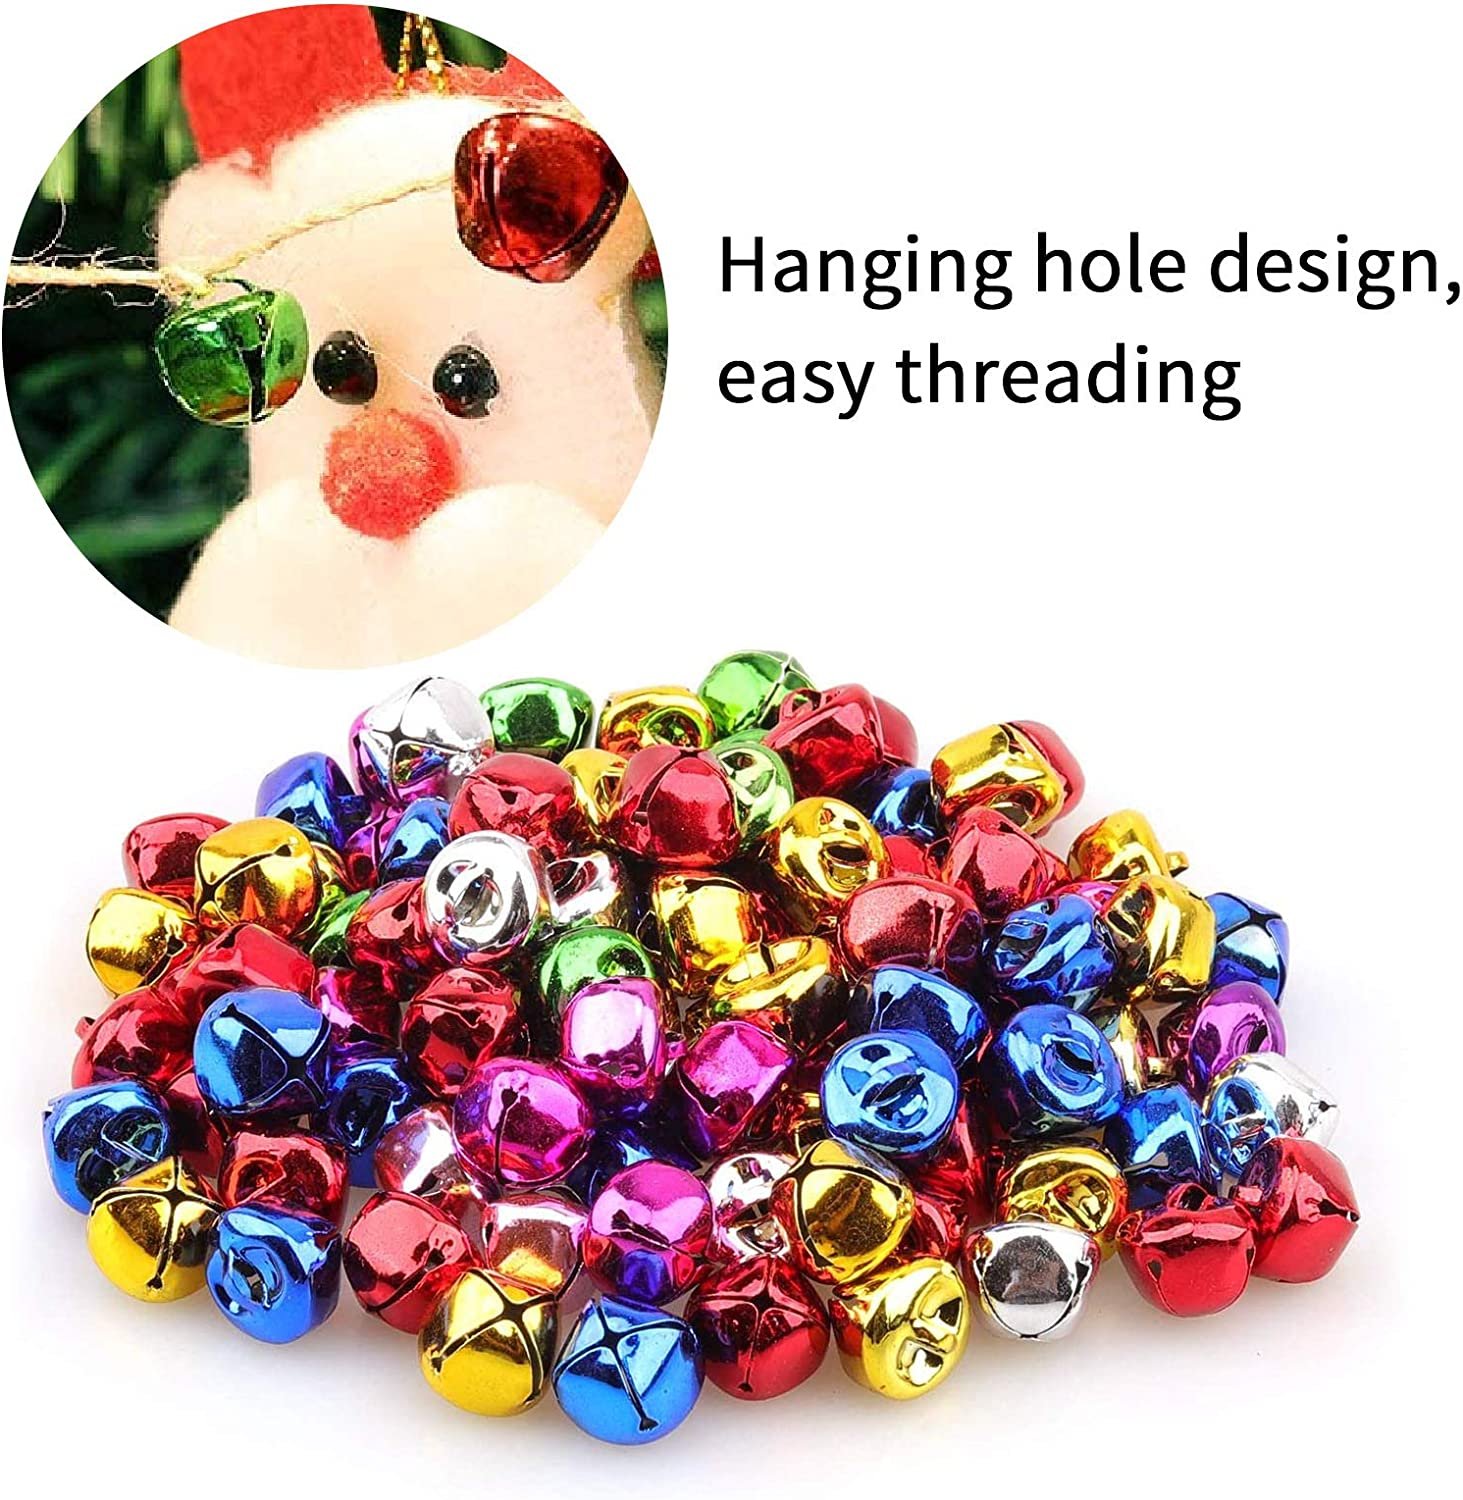 Christmas Decorations,Jingle Bell of Various Sizes 0.3//0.4//0.47 Inch 30 PCS Christmas Bells,Color Bell,Jingle Bells for Crafts,Party Decorations